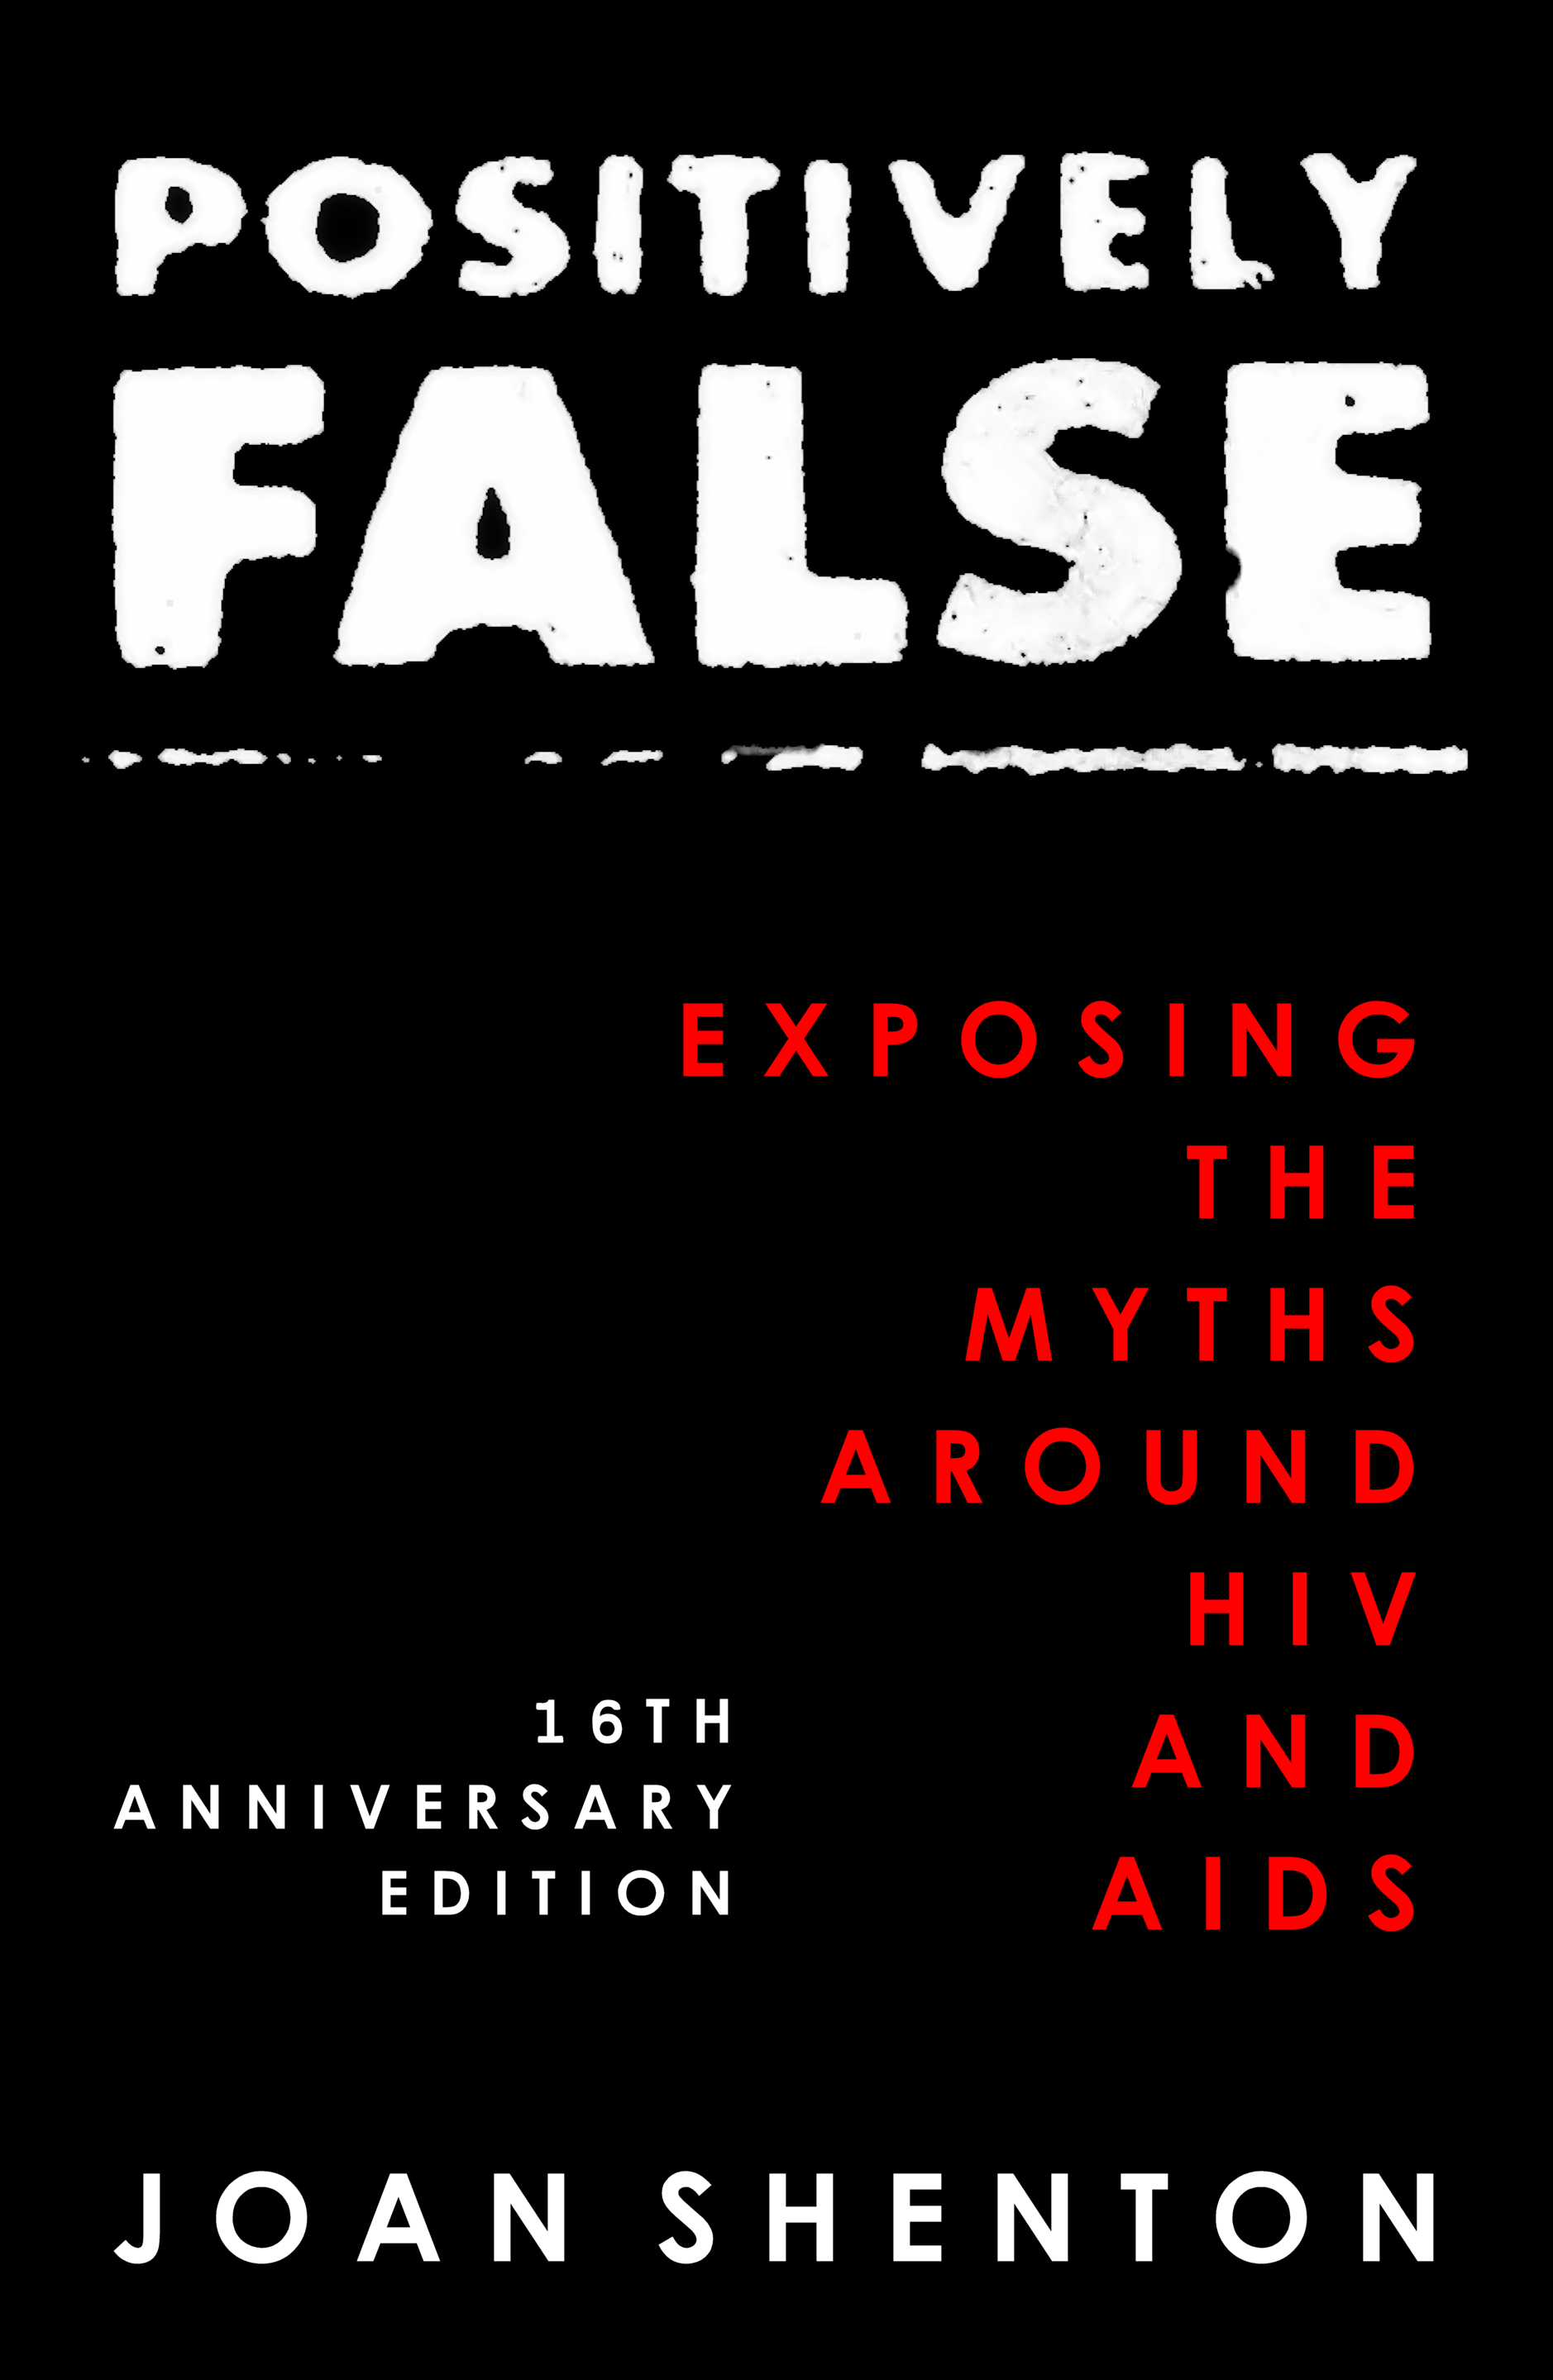 positively false exposing the myths around hiv and aids 16th anniversary edition english edition